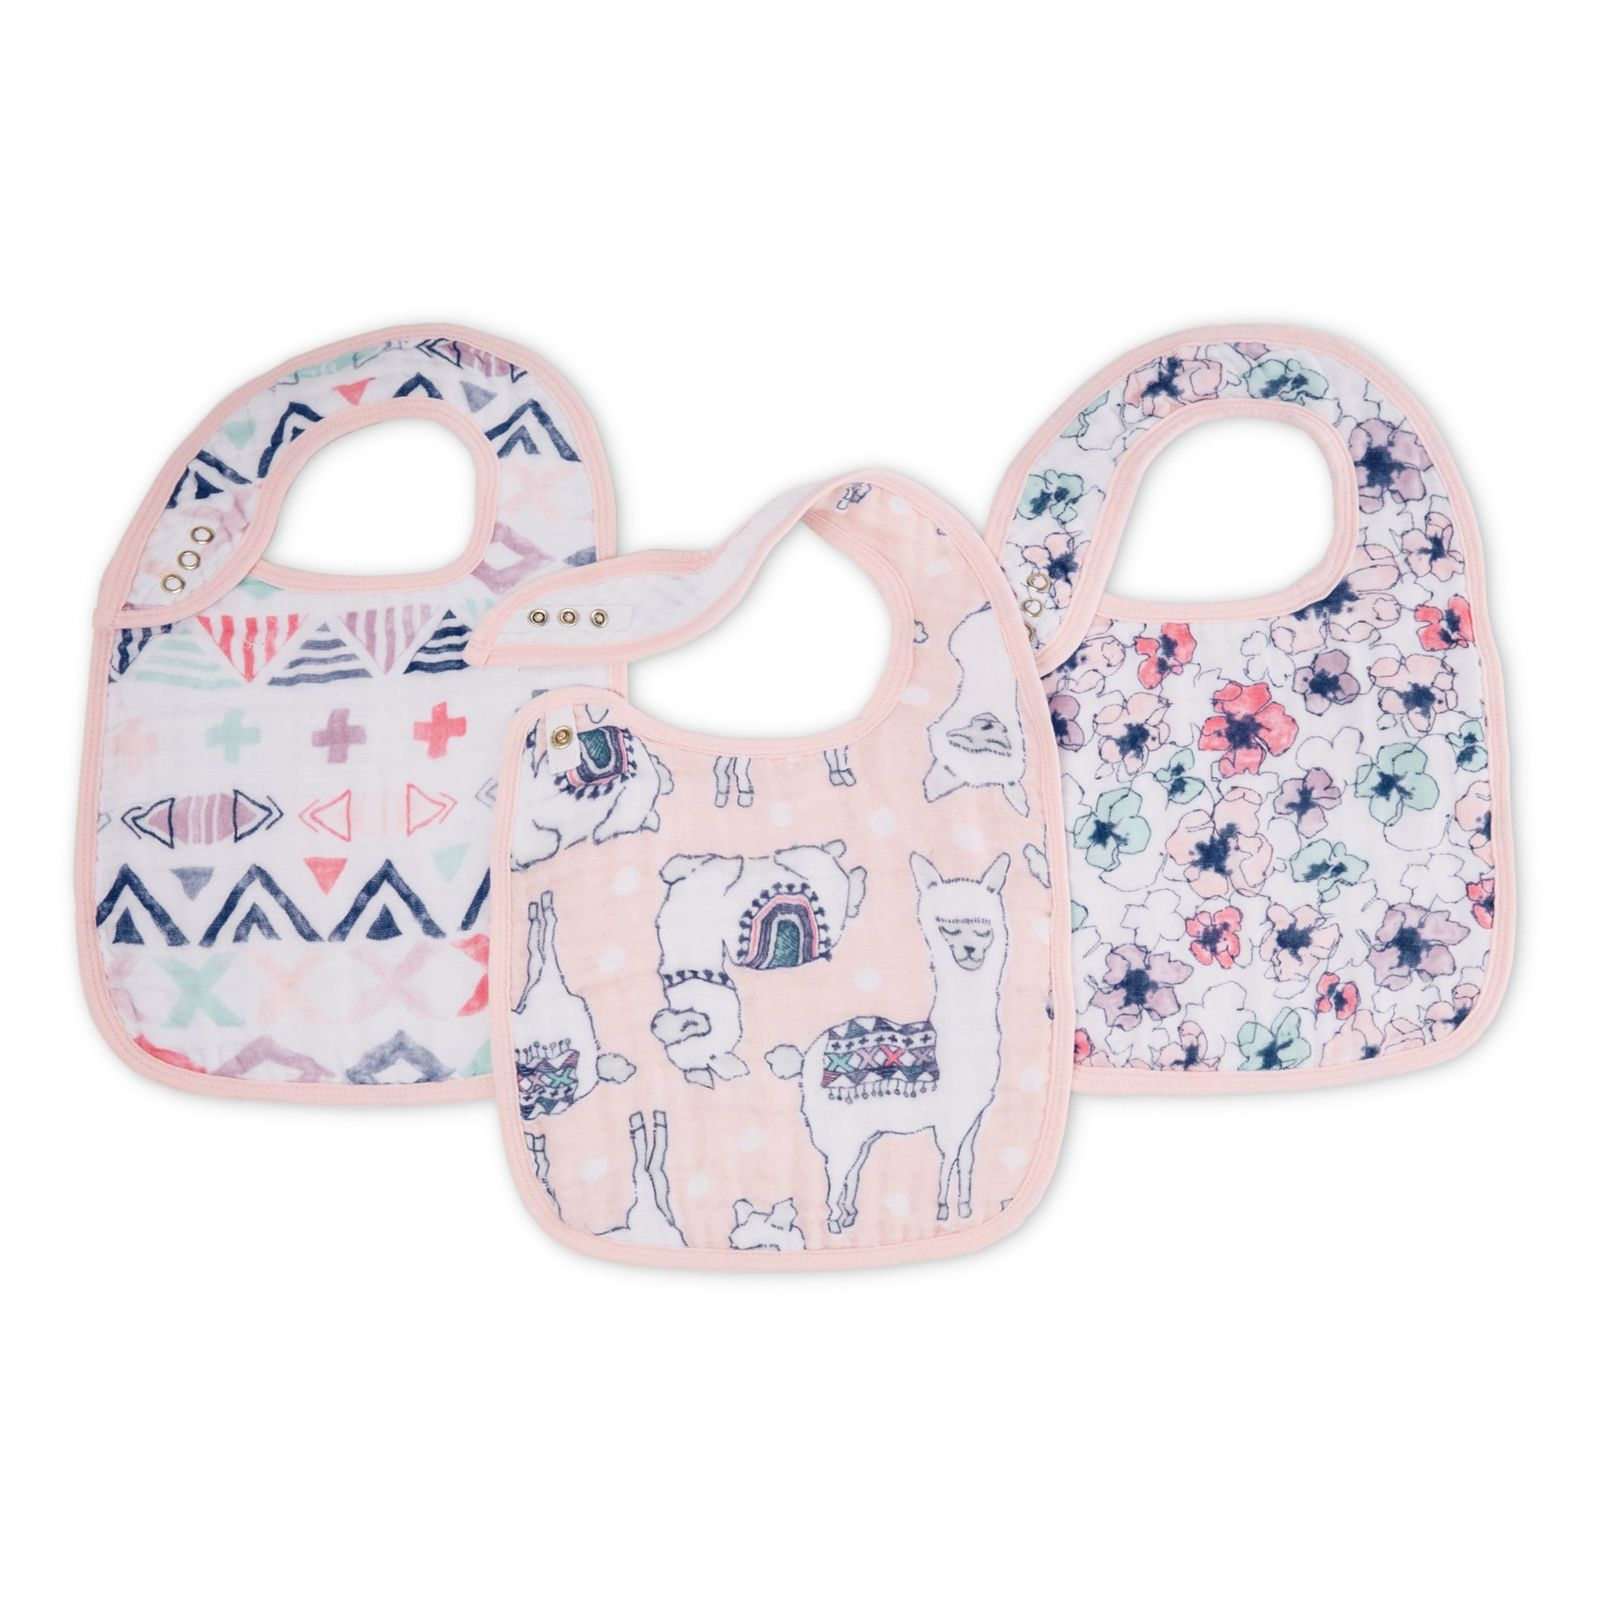 Aden + Anais: Classic Snap Bib - Trail Blooms (3 Pack) image